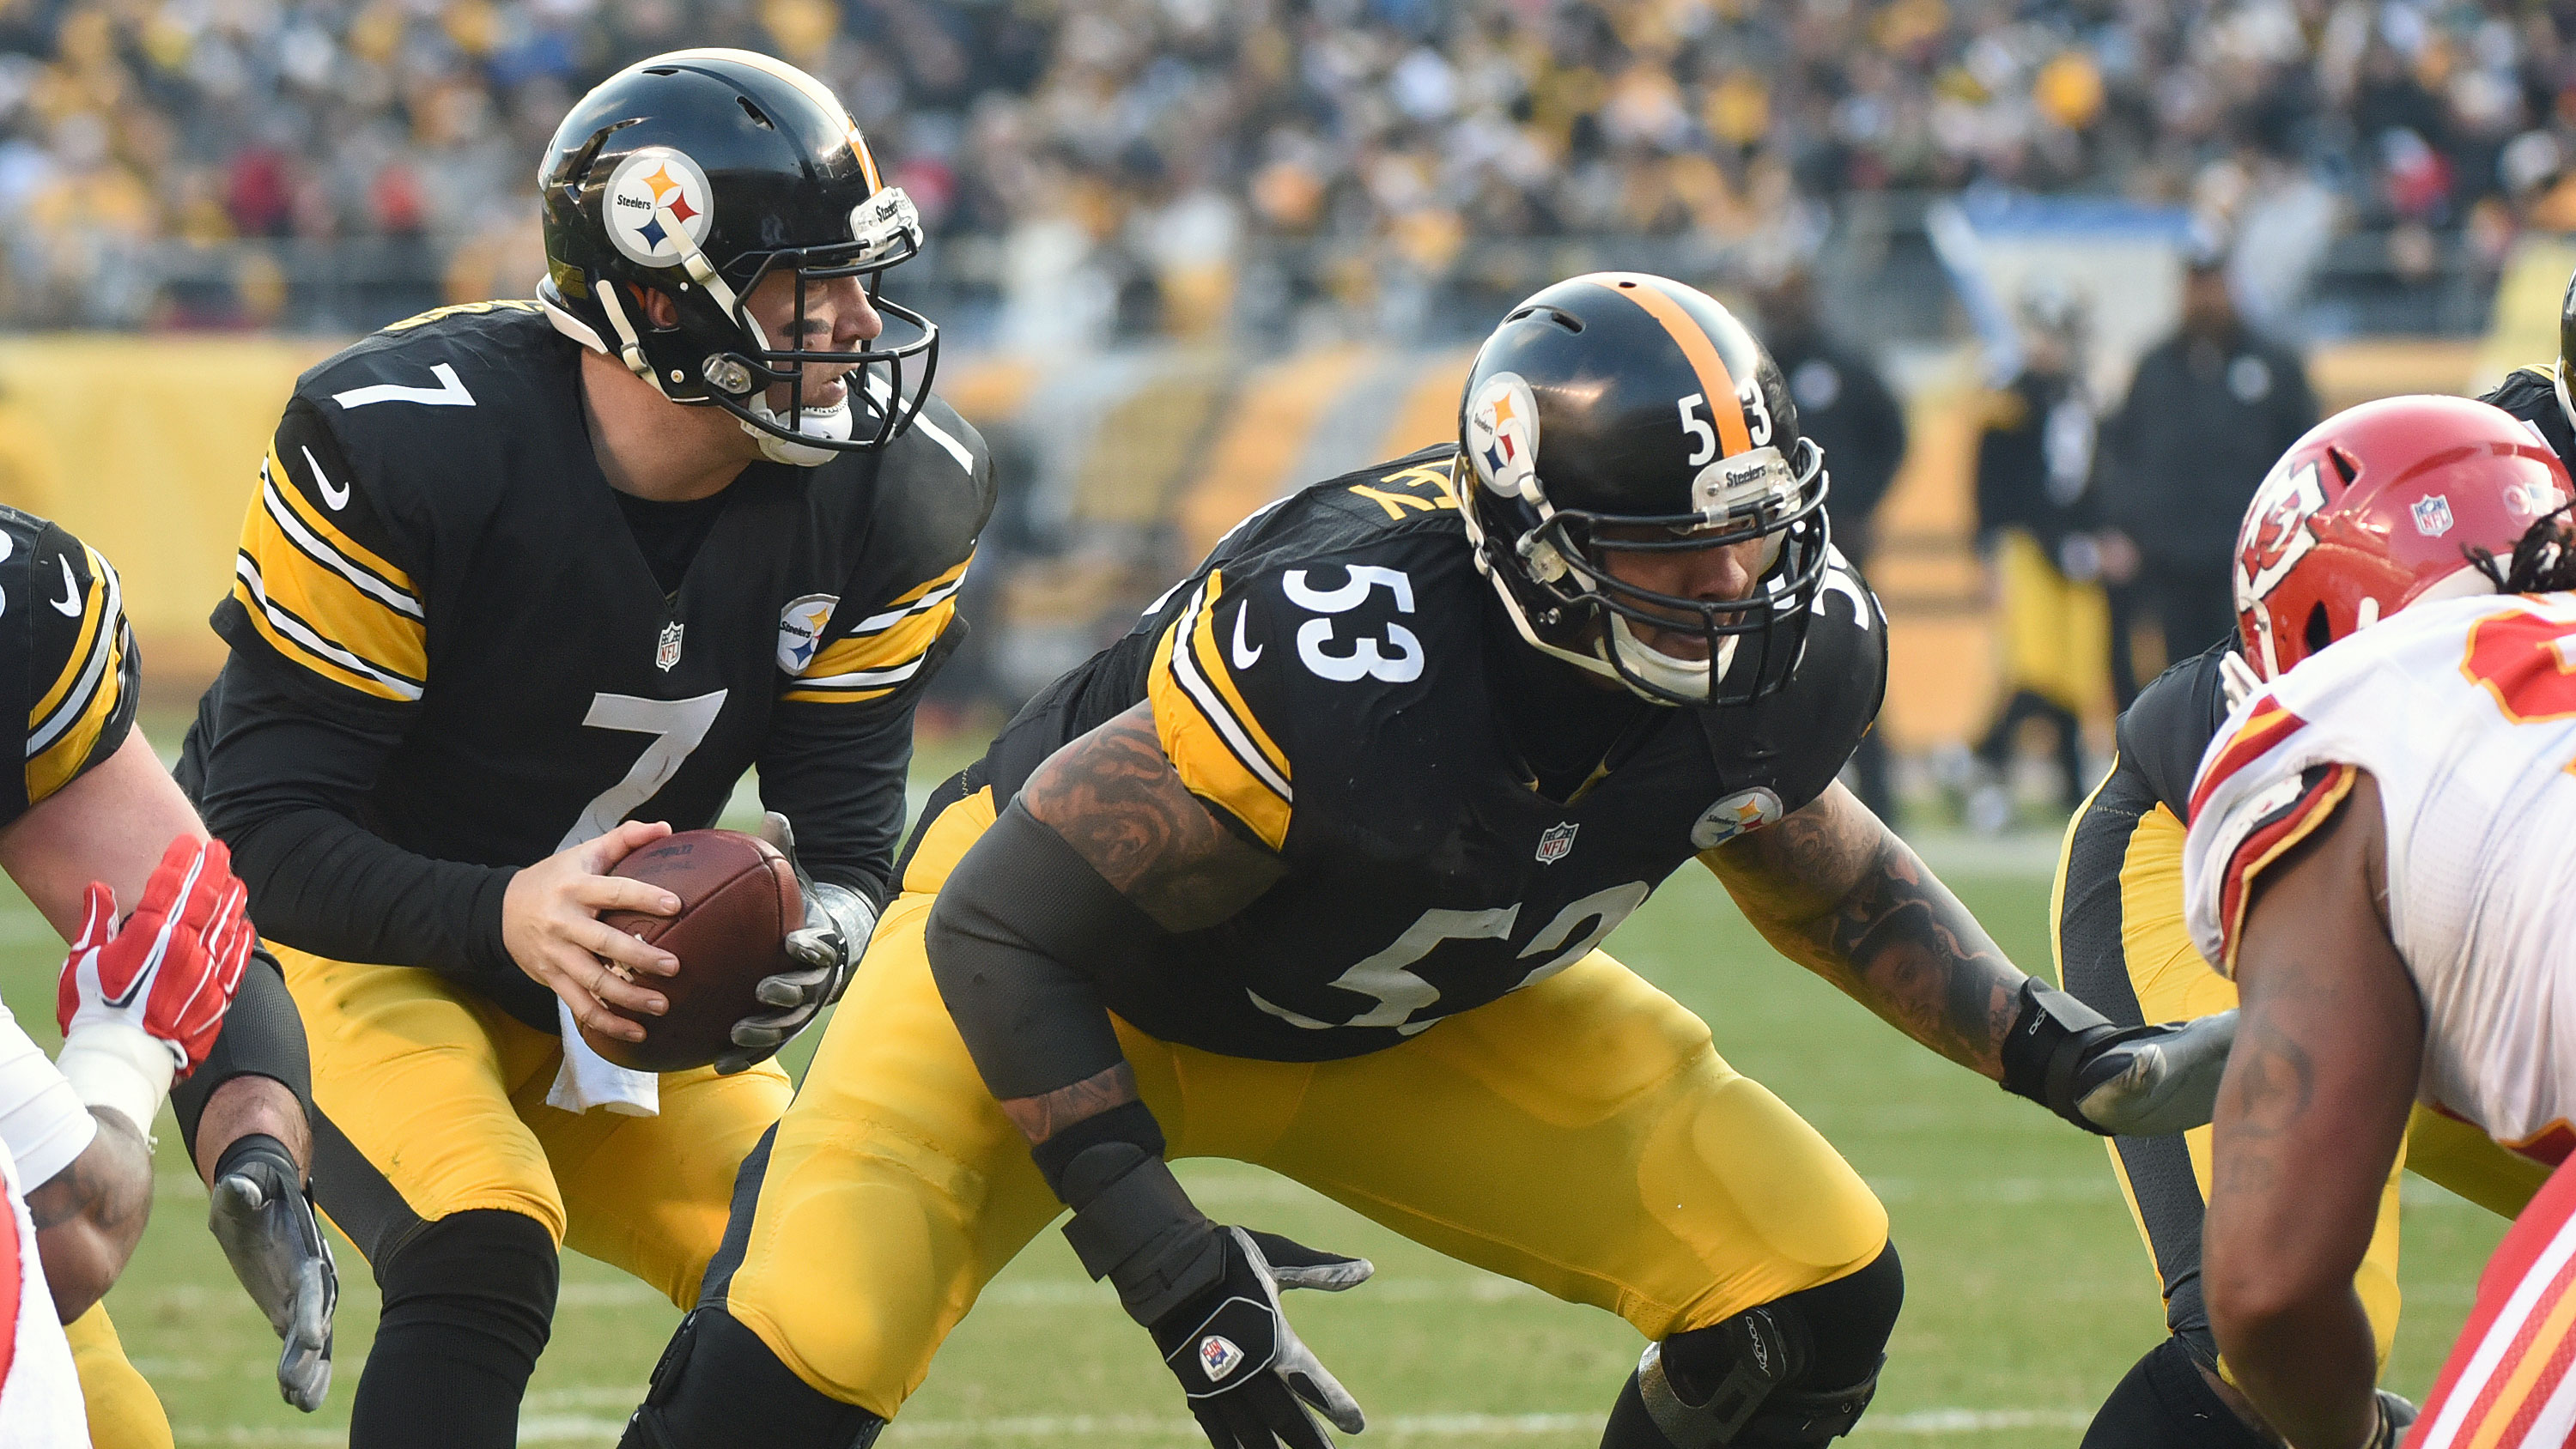 Maurkice Pouncey injury Pittsburgh Steelers C likely out 10 games